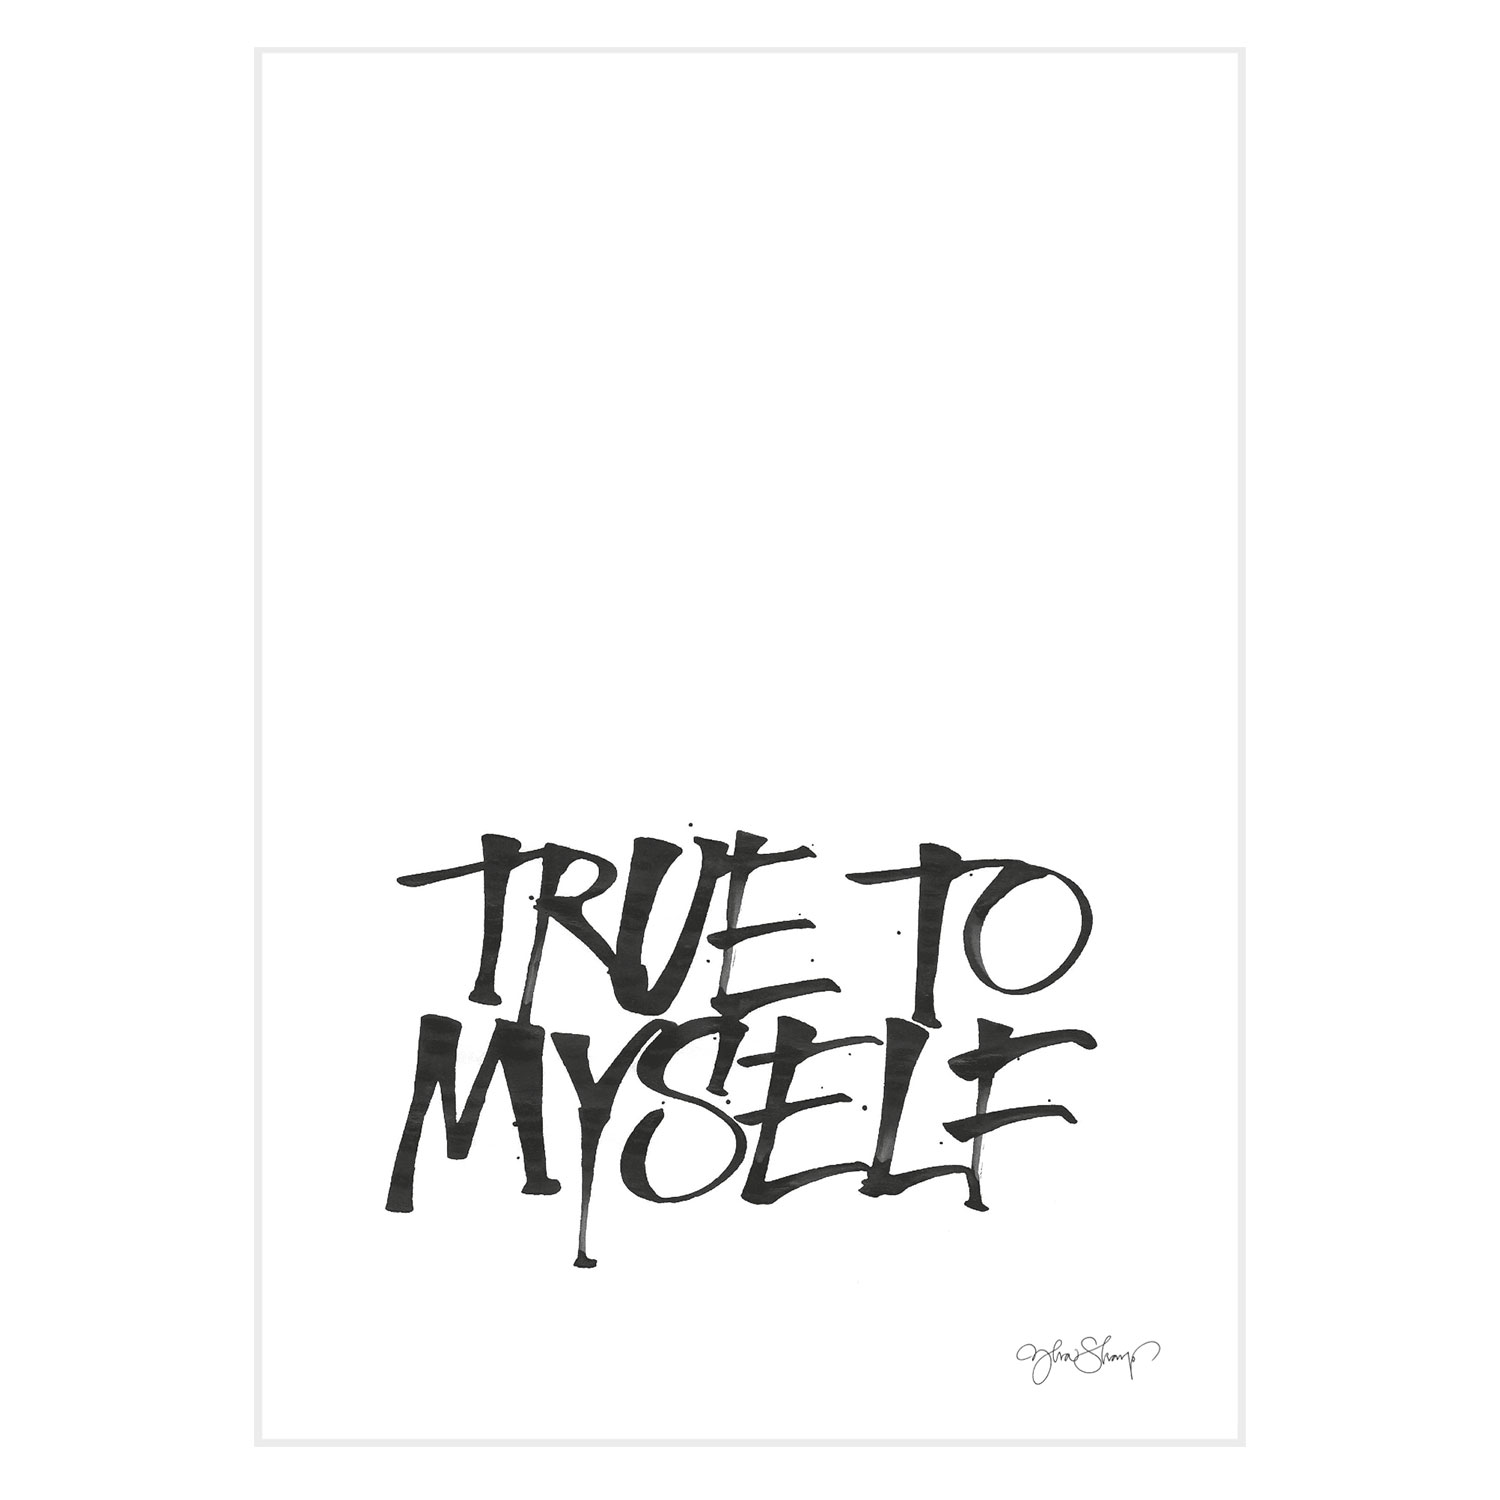 True To Myself poster